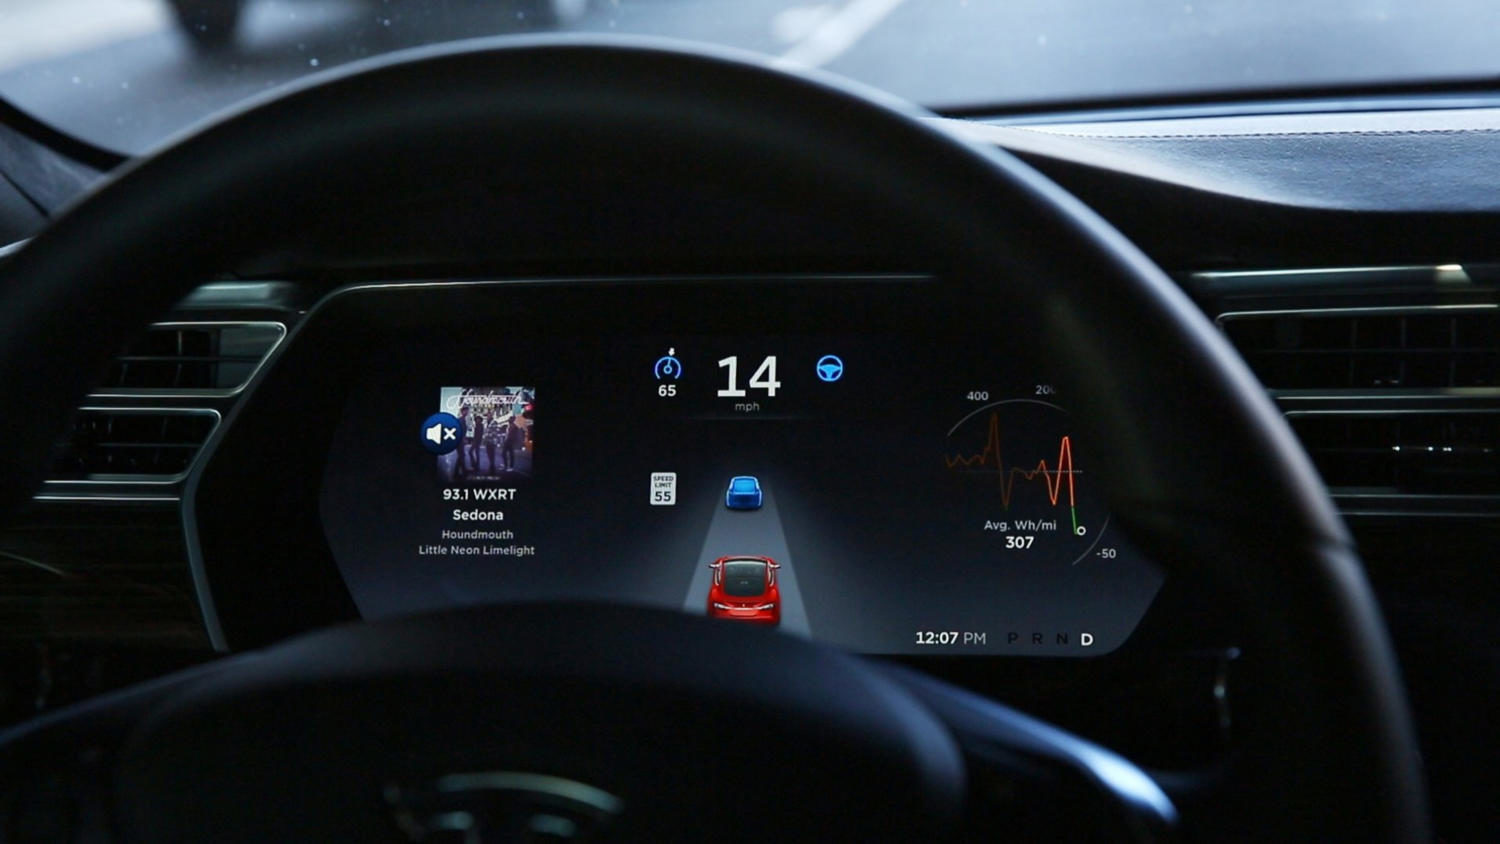 The+dashboard+of+the+software-updated+Tesla+Model+S+P90D+shows+the+icons+enabling+Tesla%27s+autopilot%2C+featuring+limited+hands-free+steering%2C+making+the+Tesla+the+closest+thing+on+the+market+to+an+autonomous-driving+enable+vehicle.+%28Chris+Walker%2FChicago+Tribune%2FTNS%29